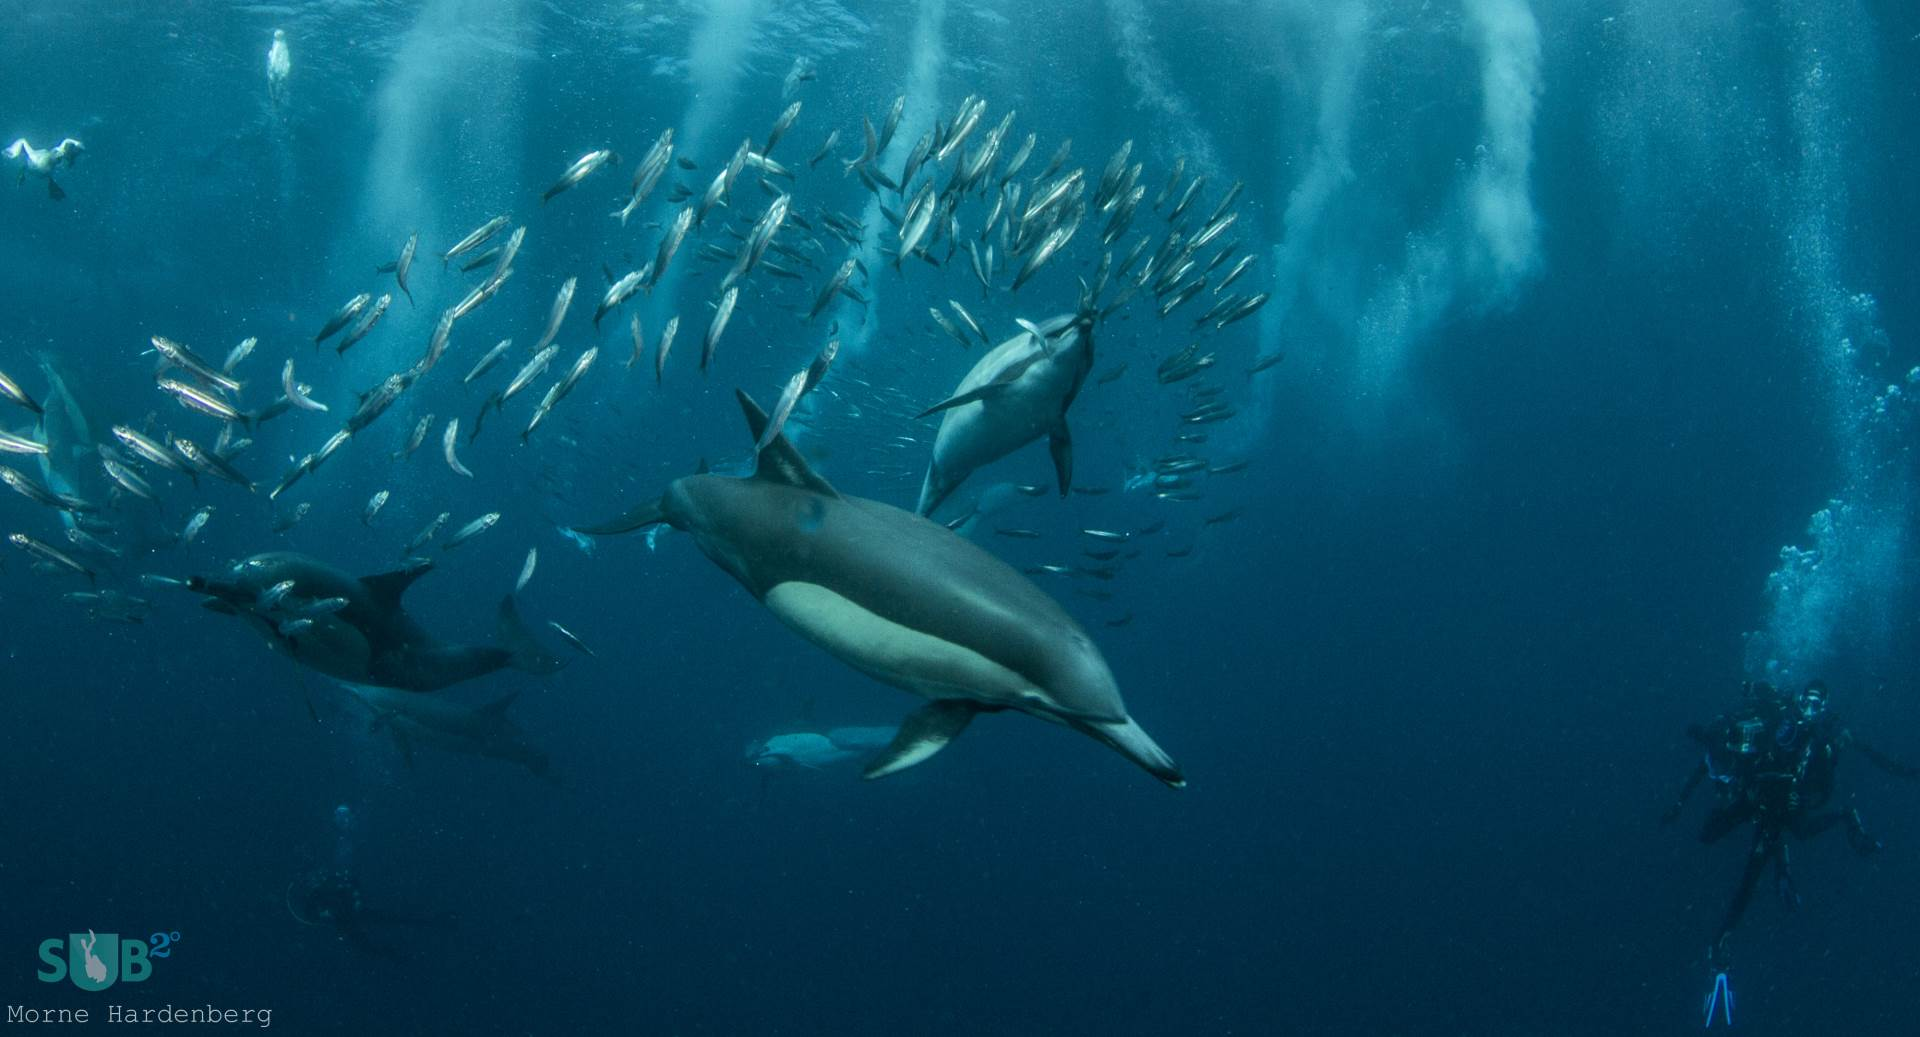 The common dolphin is the name given to two species of dolphin, making up the genus Delphinus, even though the short-beaked common dolphin has a larger range than its long-beaked counterpart.